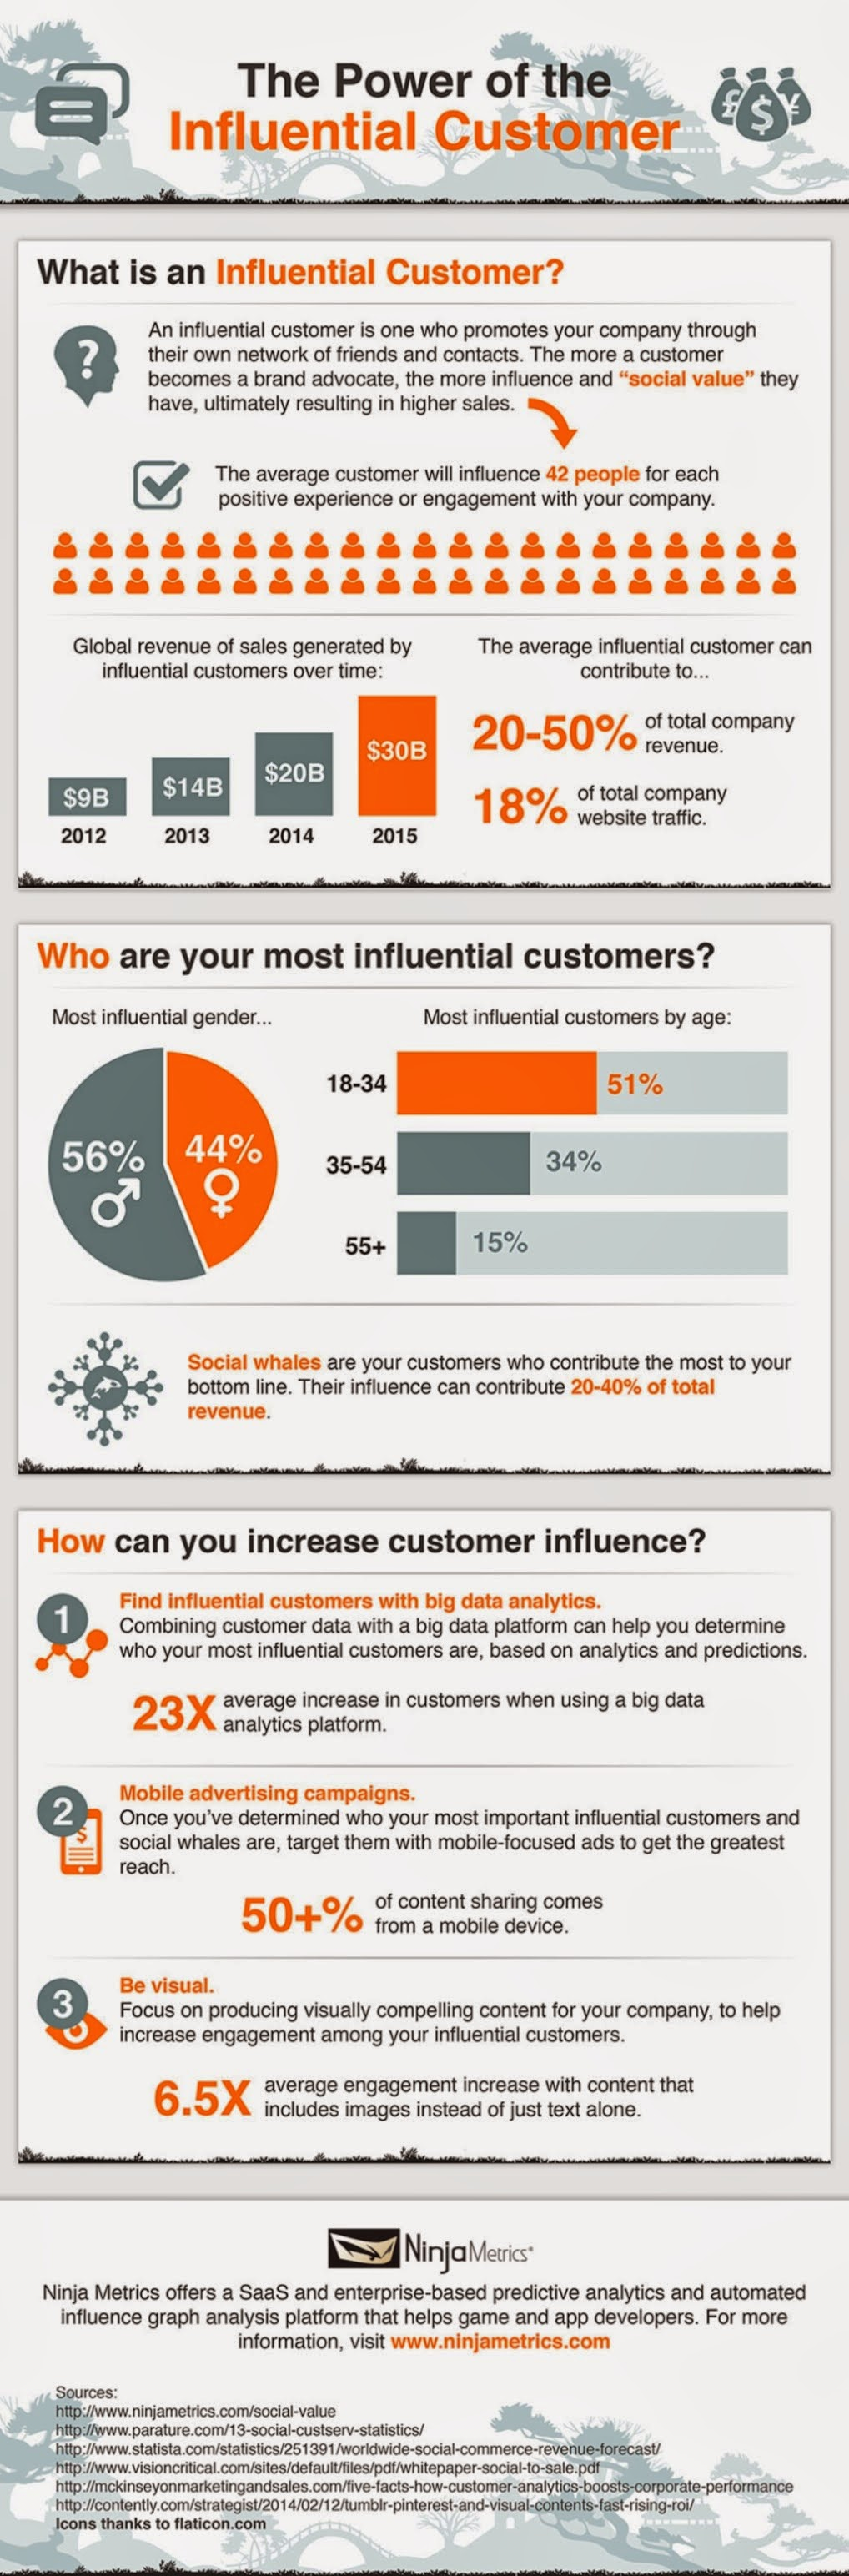 The Power of the Influential Customer